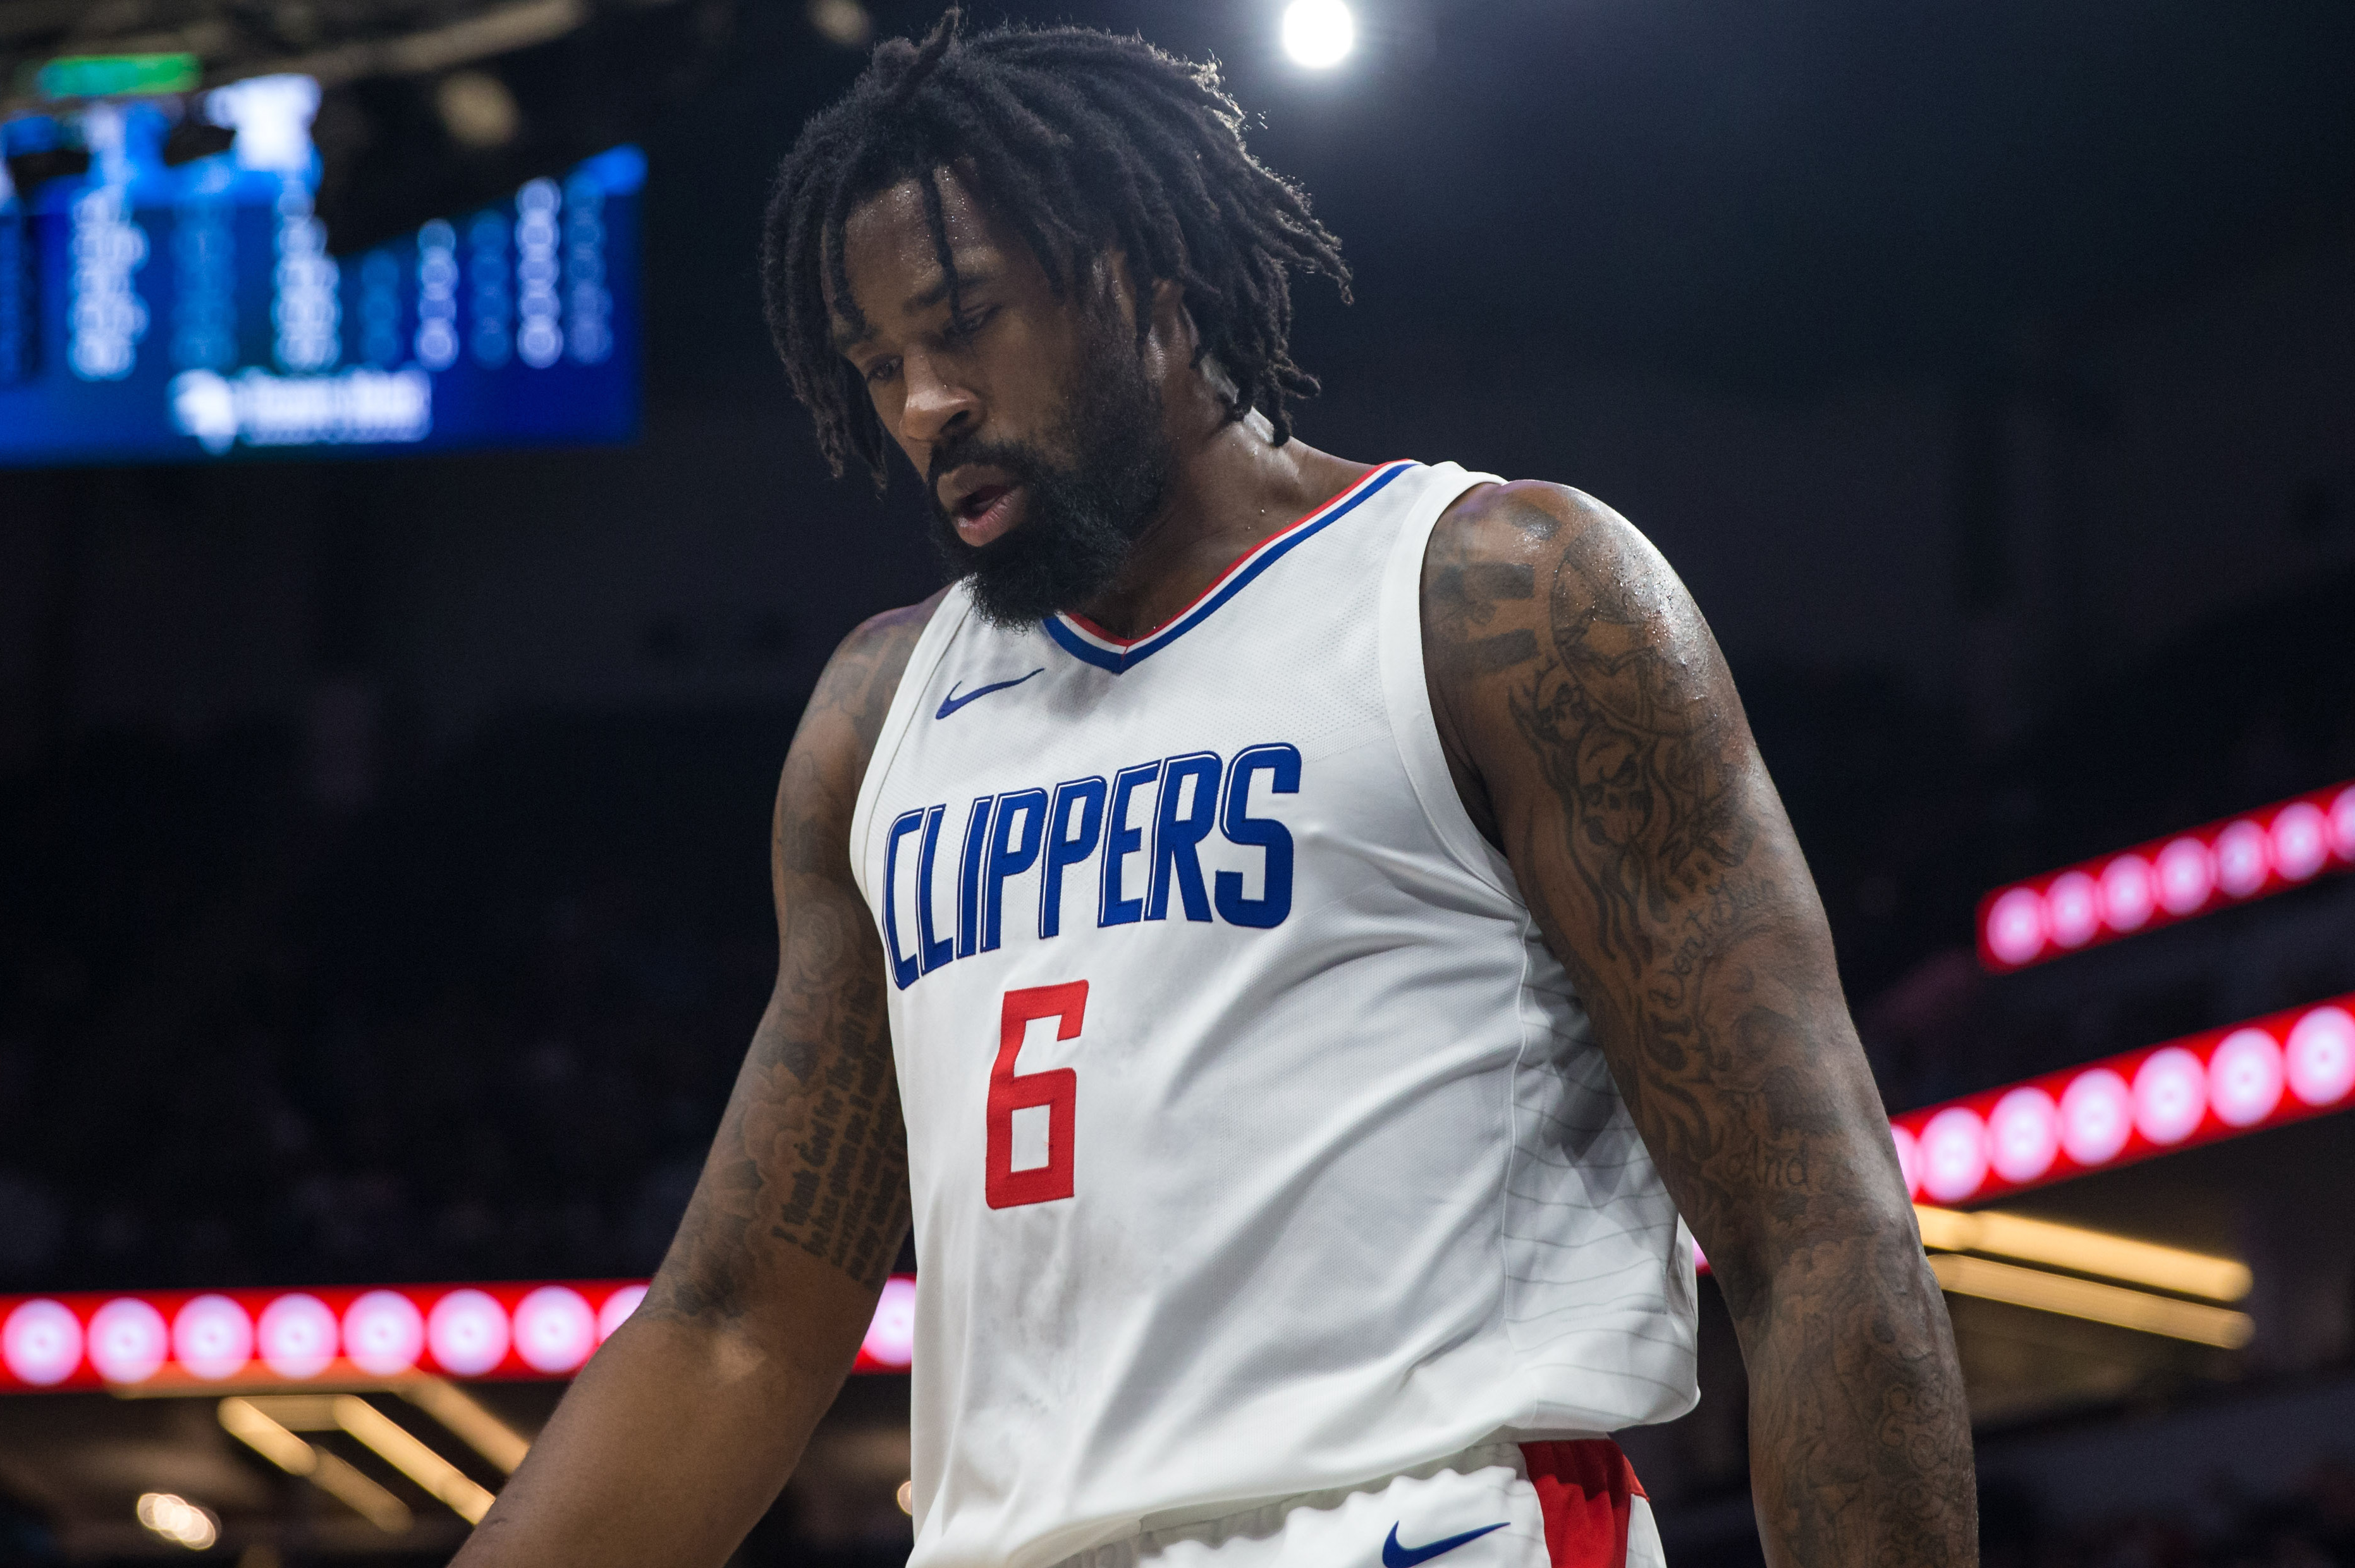 Teams f4 why haven t the los angeles lakers done a trade yet t252325 - Danilo Gallinari Traded To Clippers Jamal Crawford To Hawks In 3 Team Swap Bleacher Report